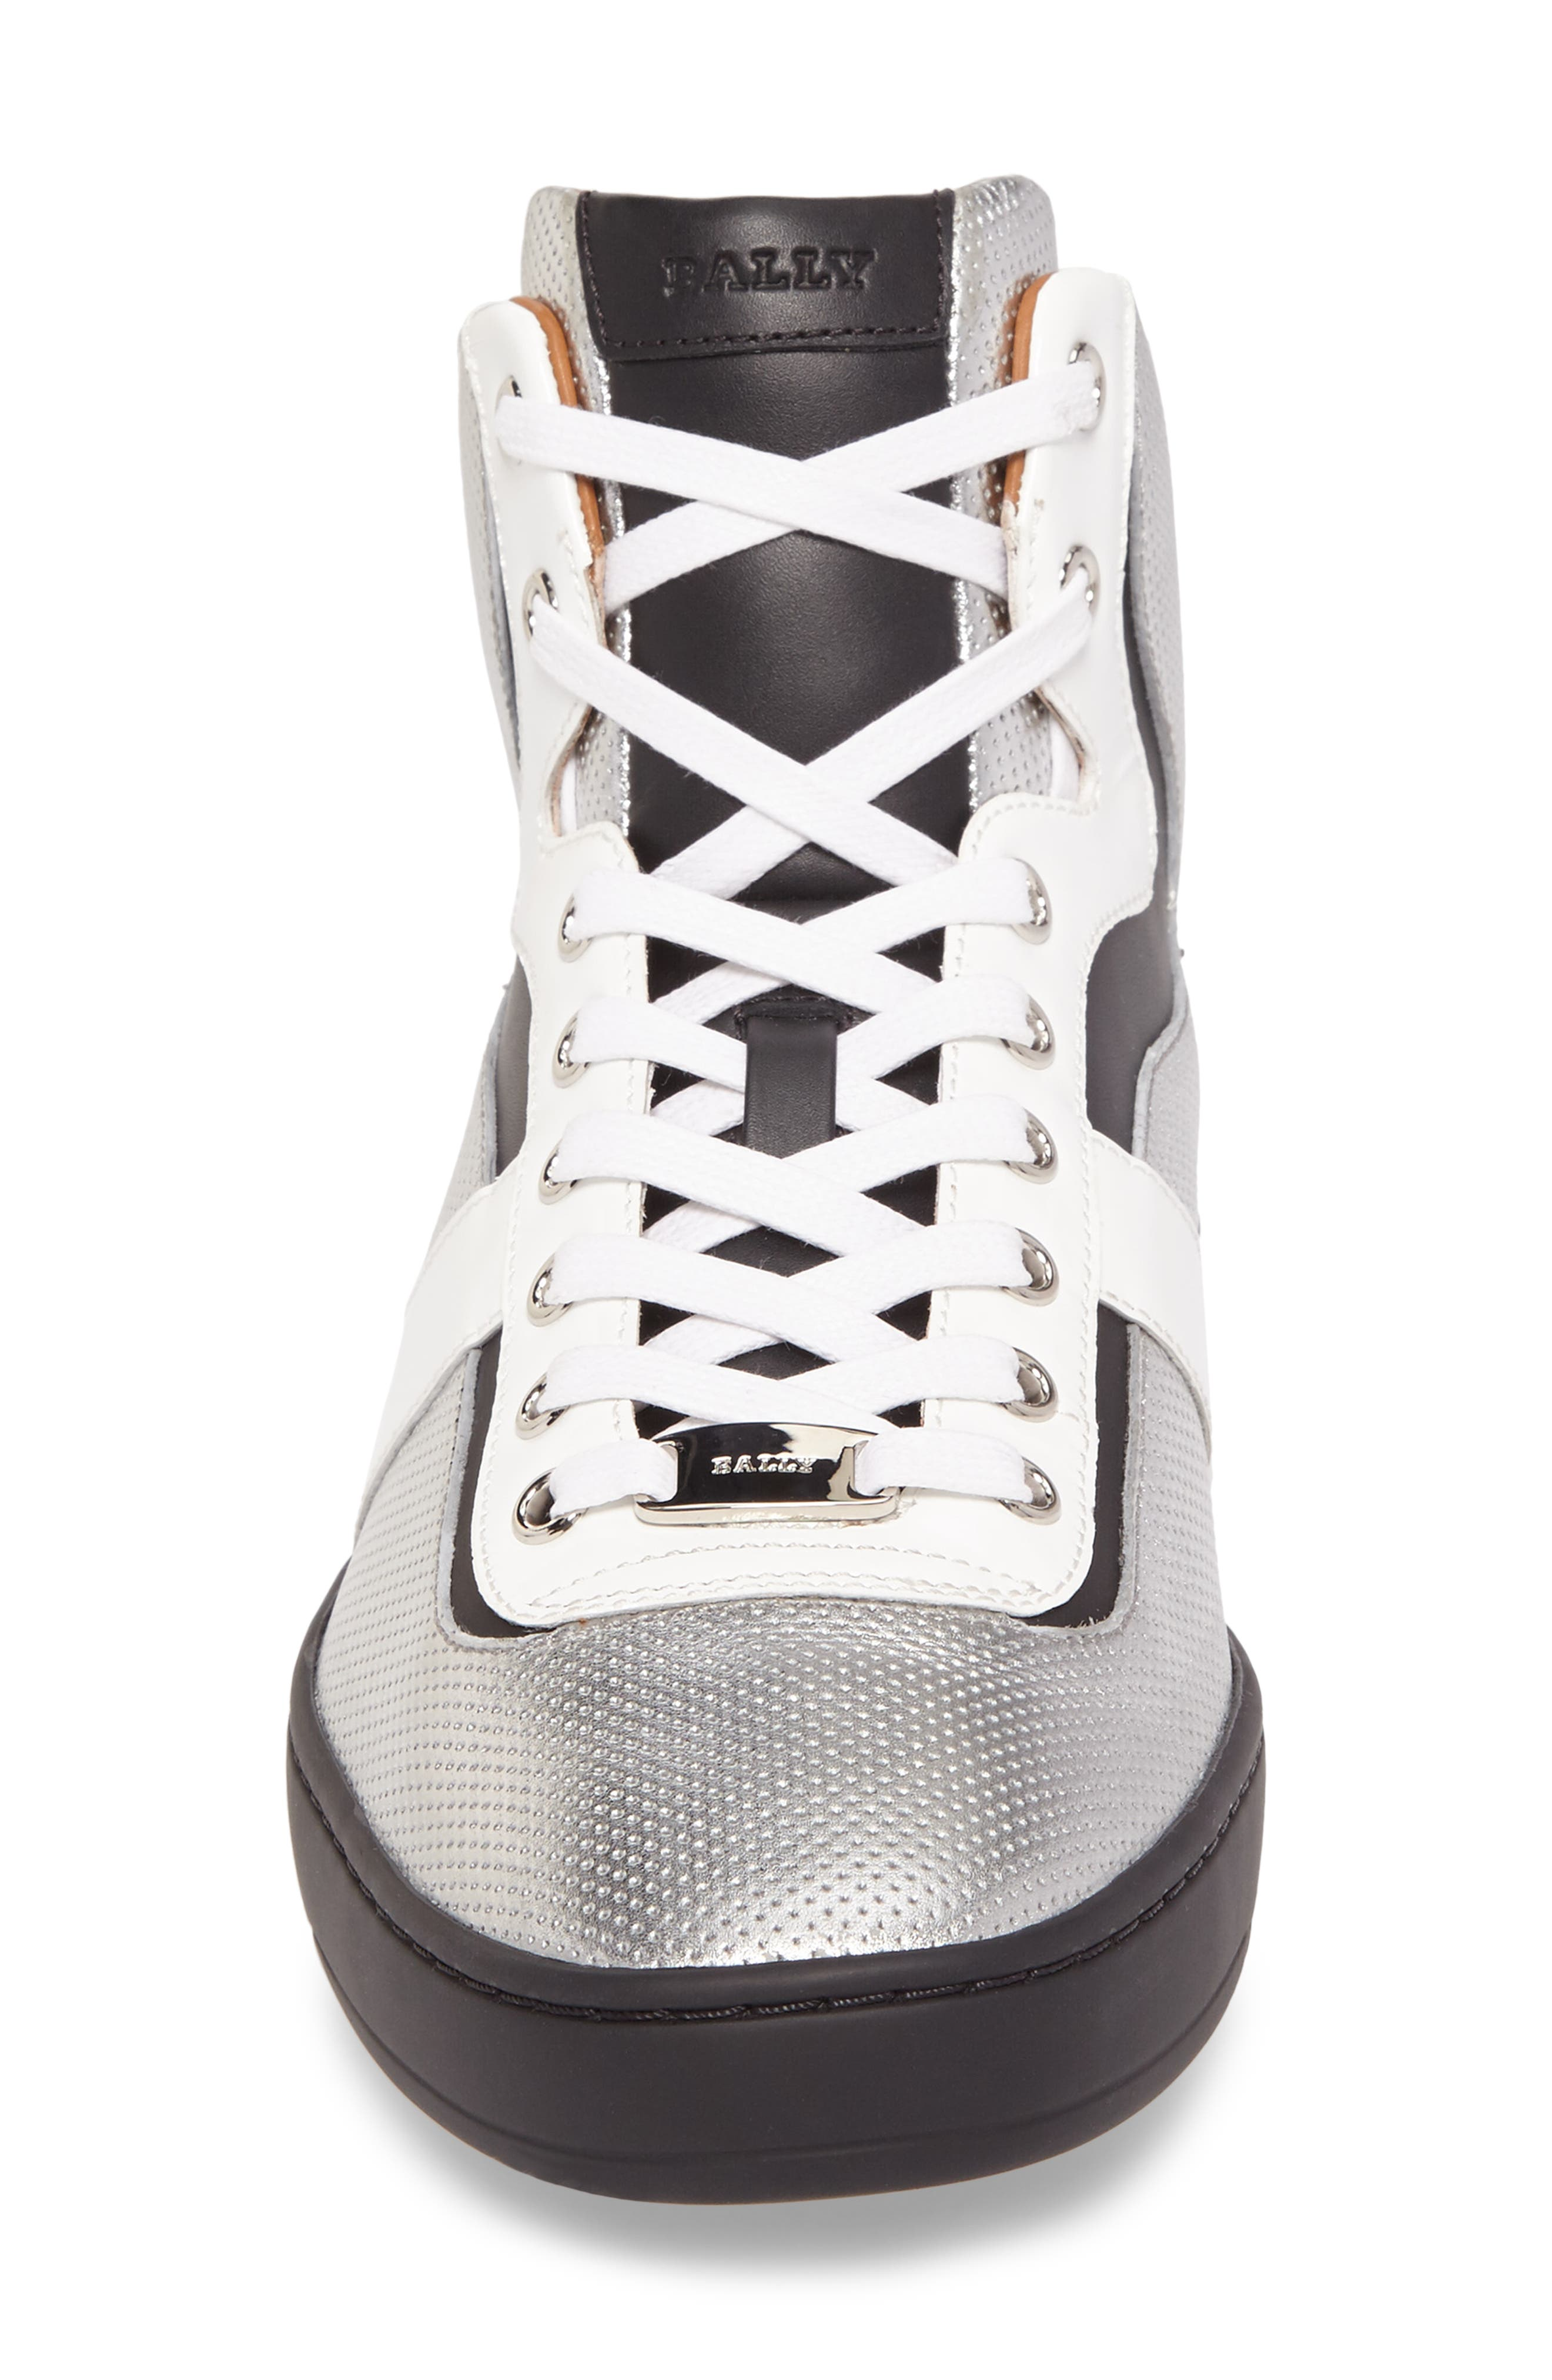 Eroy High Top Sneaker,                             Alternate thumbnail 4, color,                             Silver